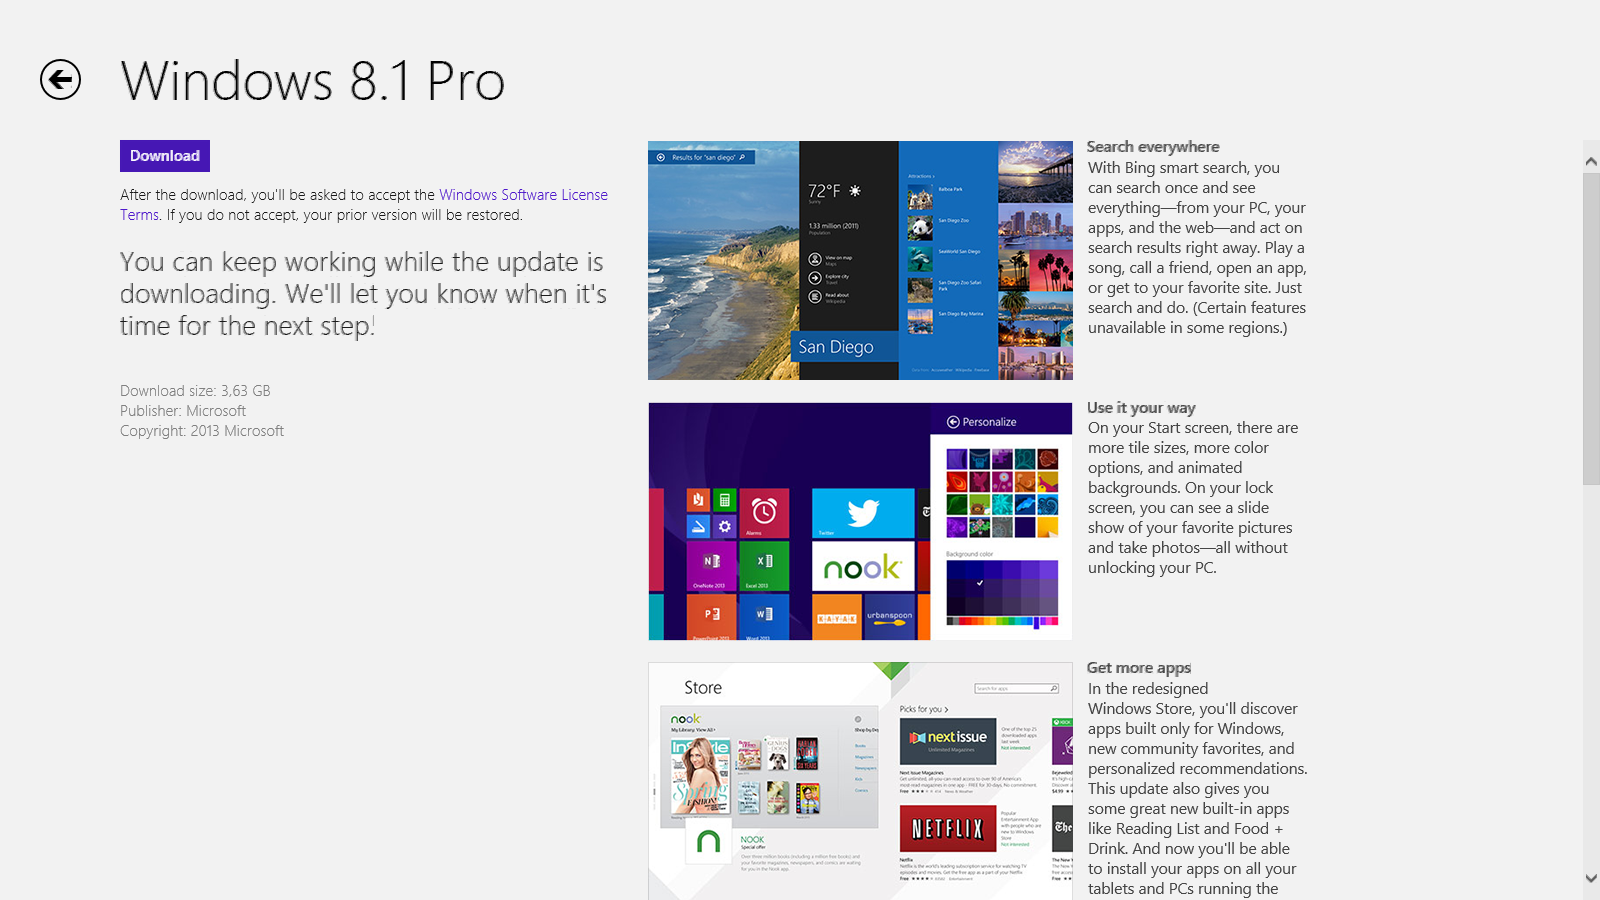 Memperbaharui Windows 8.1 Pro